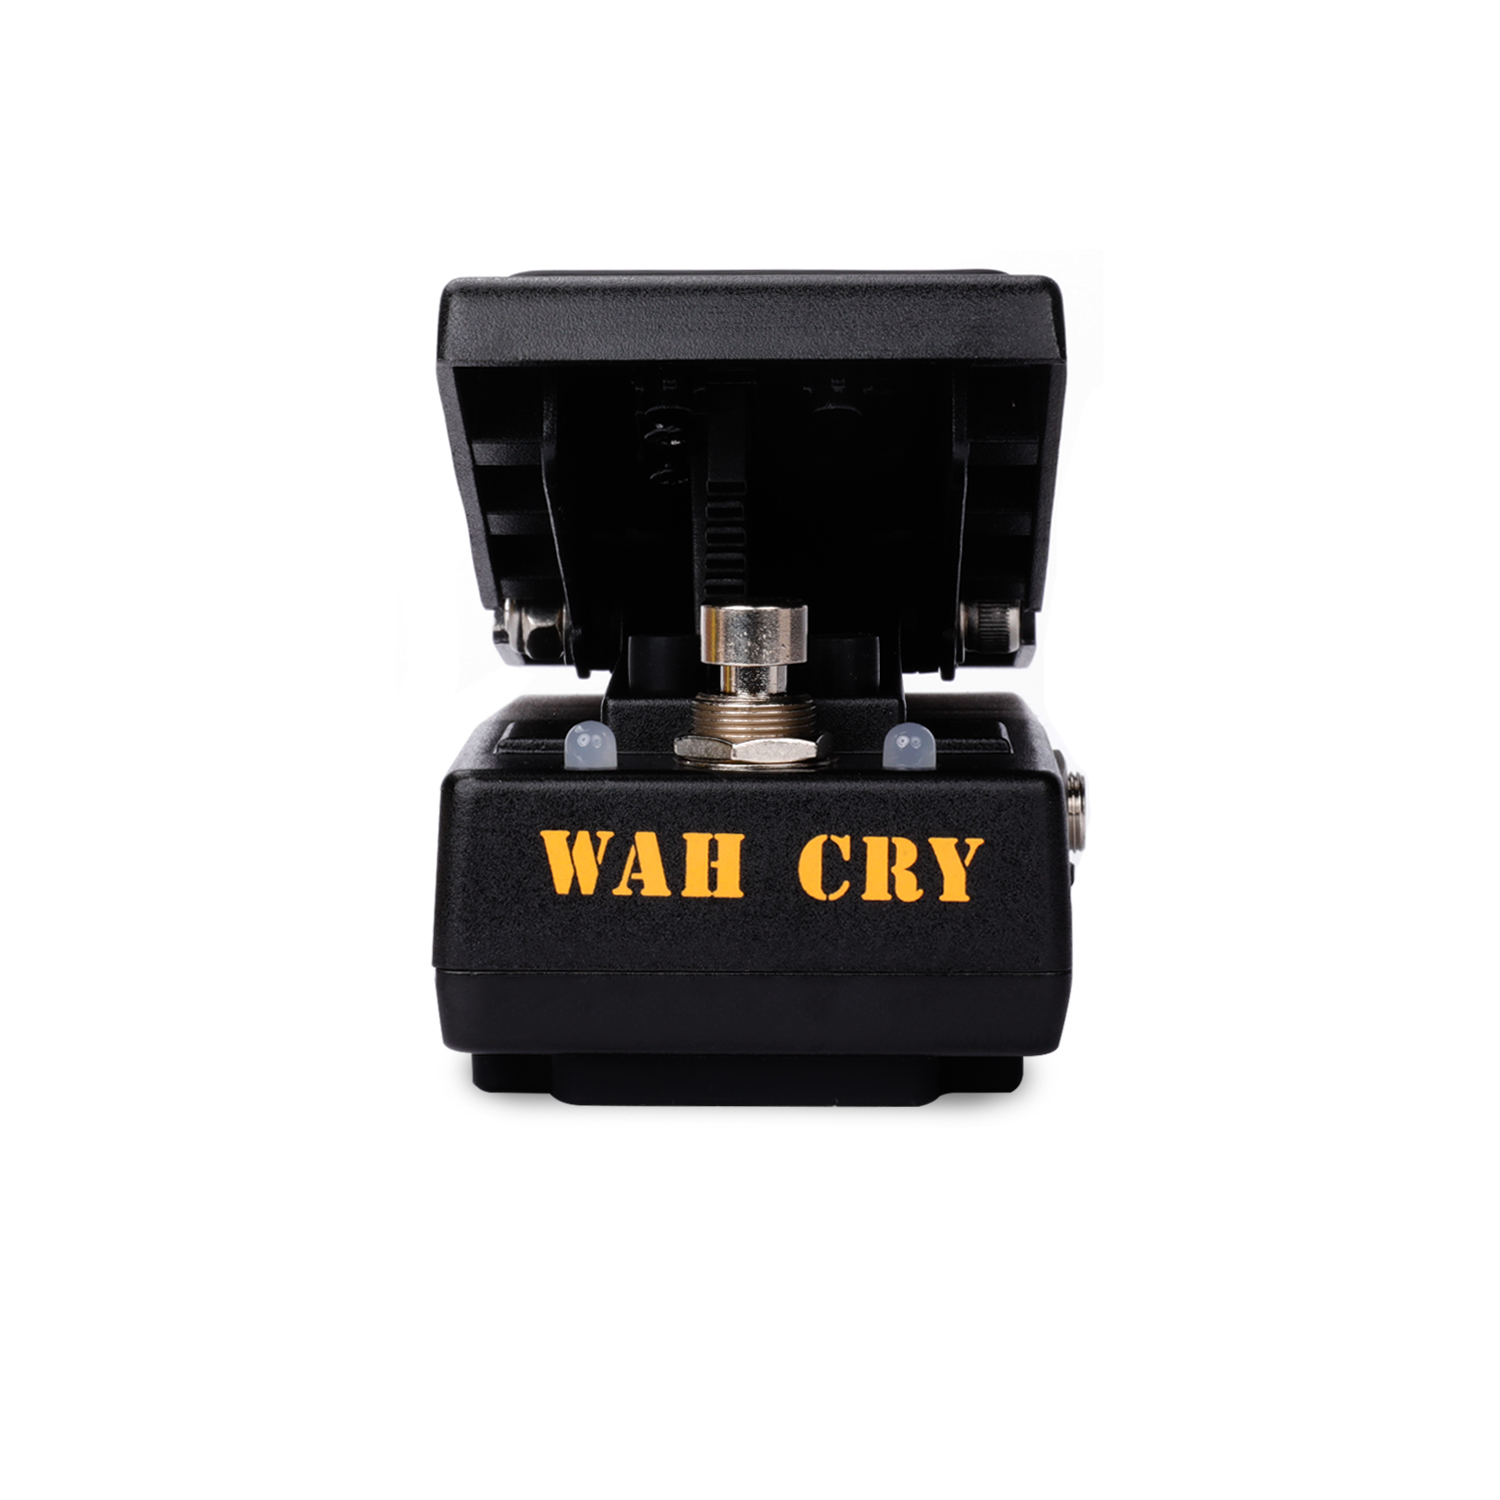 donner wah cry 2 in 1 mini guitar wah effect volume pedal true bypass us stock ebay. Black Bedroom Furniture Sets. Home Design Ideas